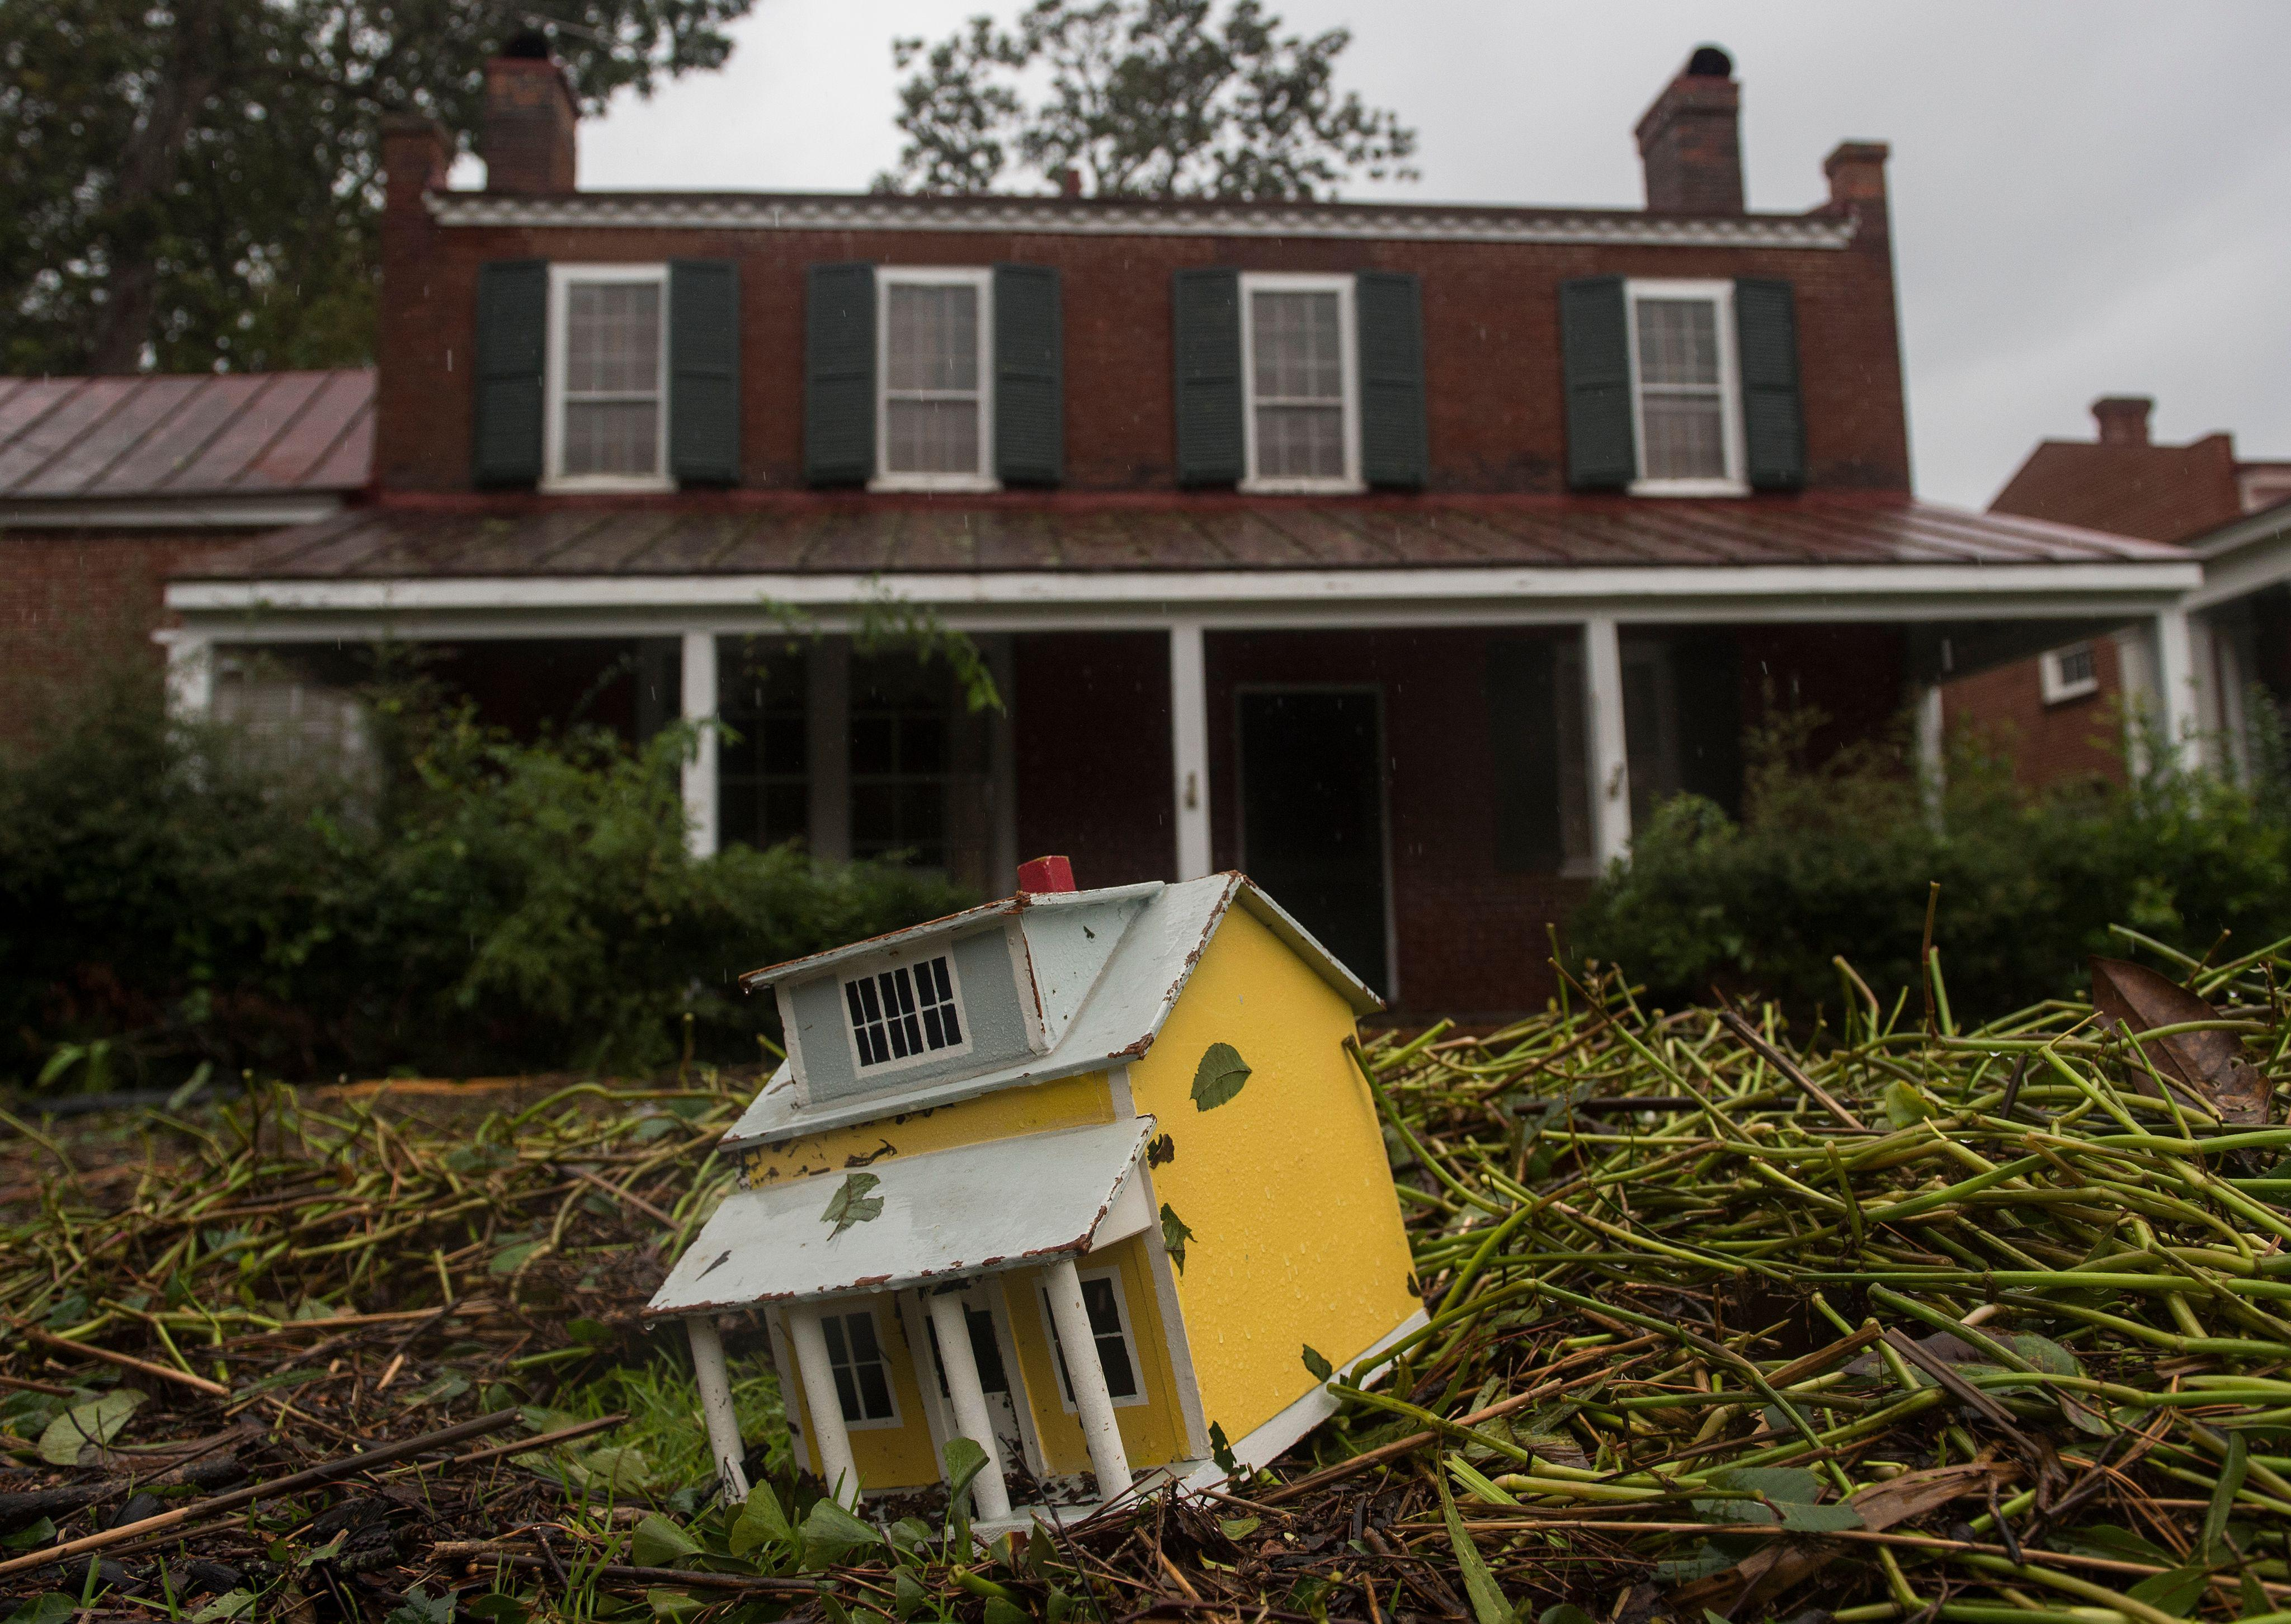 A toy house and other debris is strewn in the front lawn of a house, from flooding the day before when Hurricane Florence made landfal, in New Bern, North Carolina on September 15, 2018.